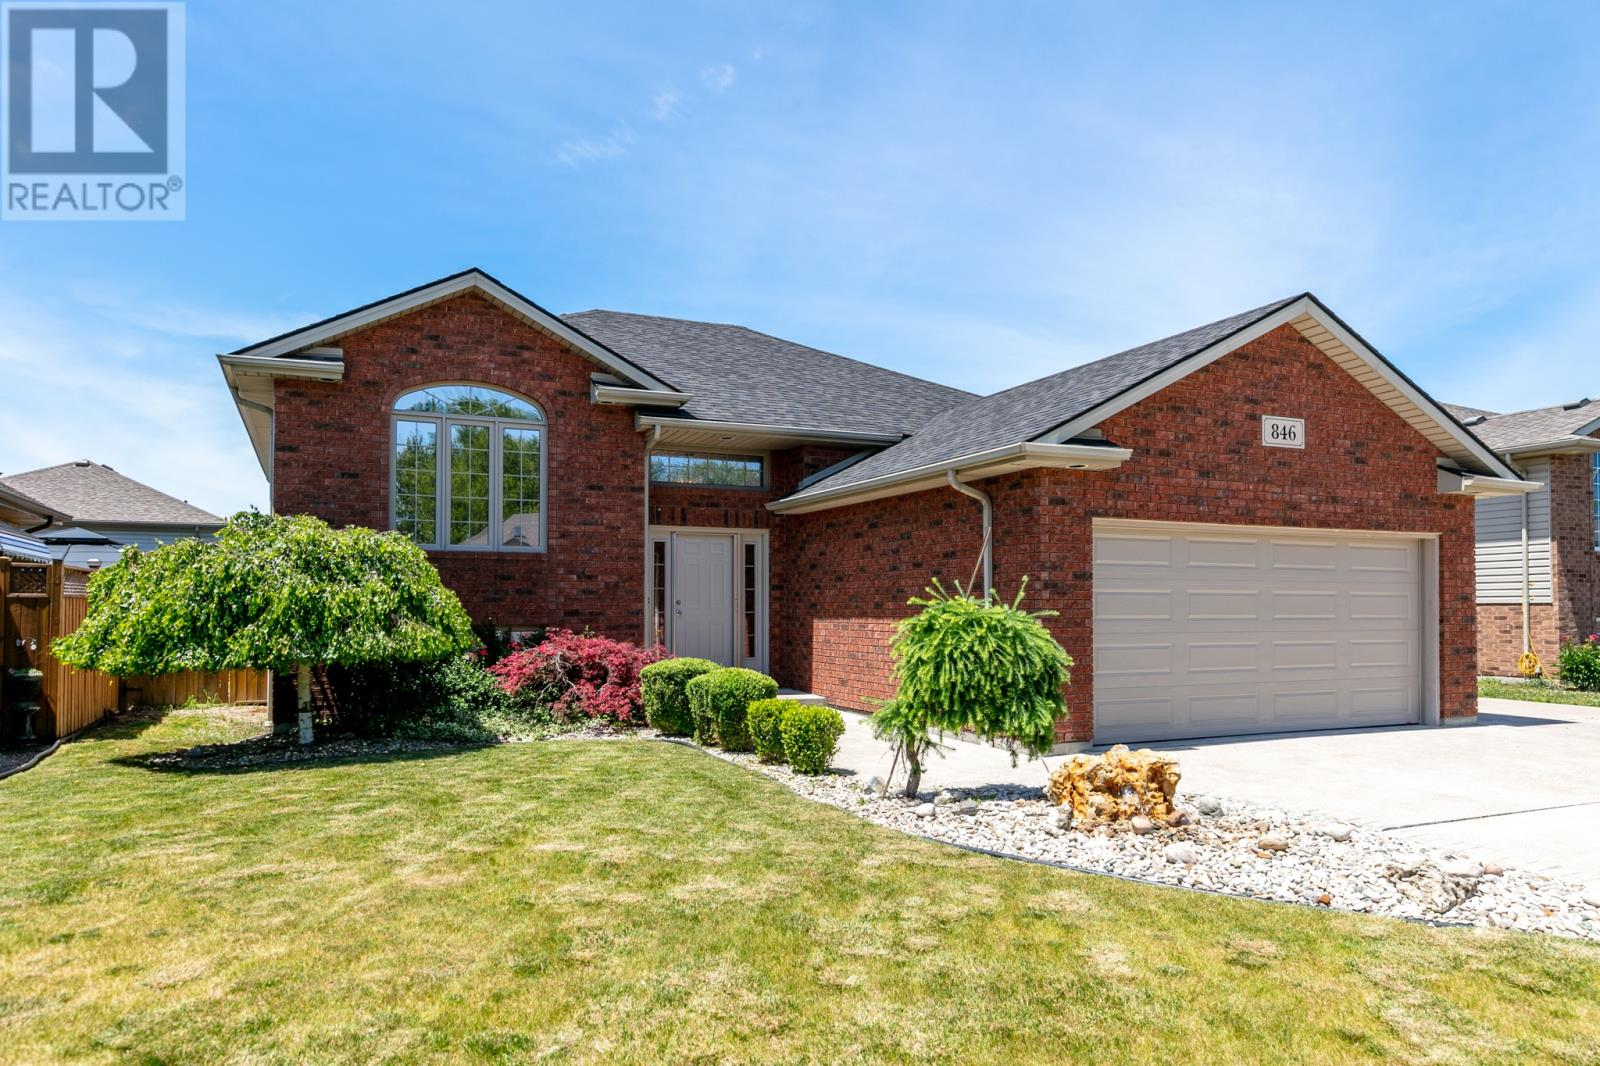 Removed: 846 Southwood Drive, Lakeshore, ON - Removed on 2018-06-22 07:18:11